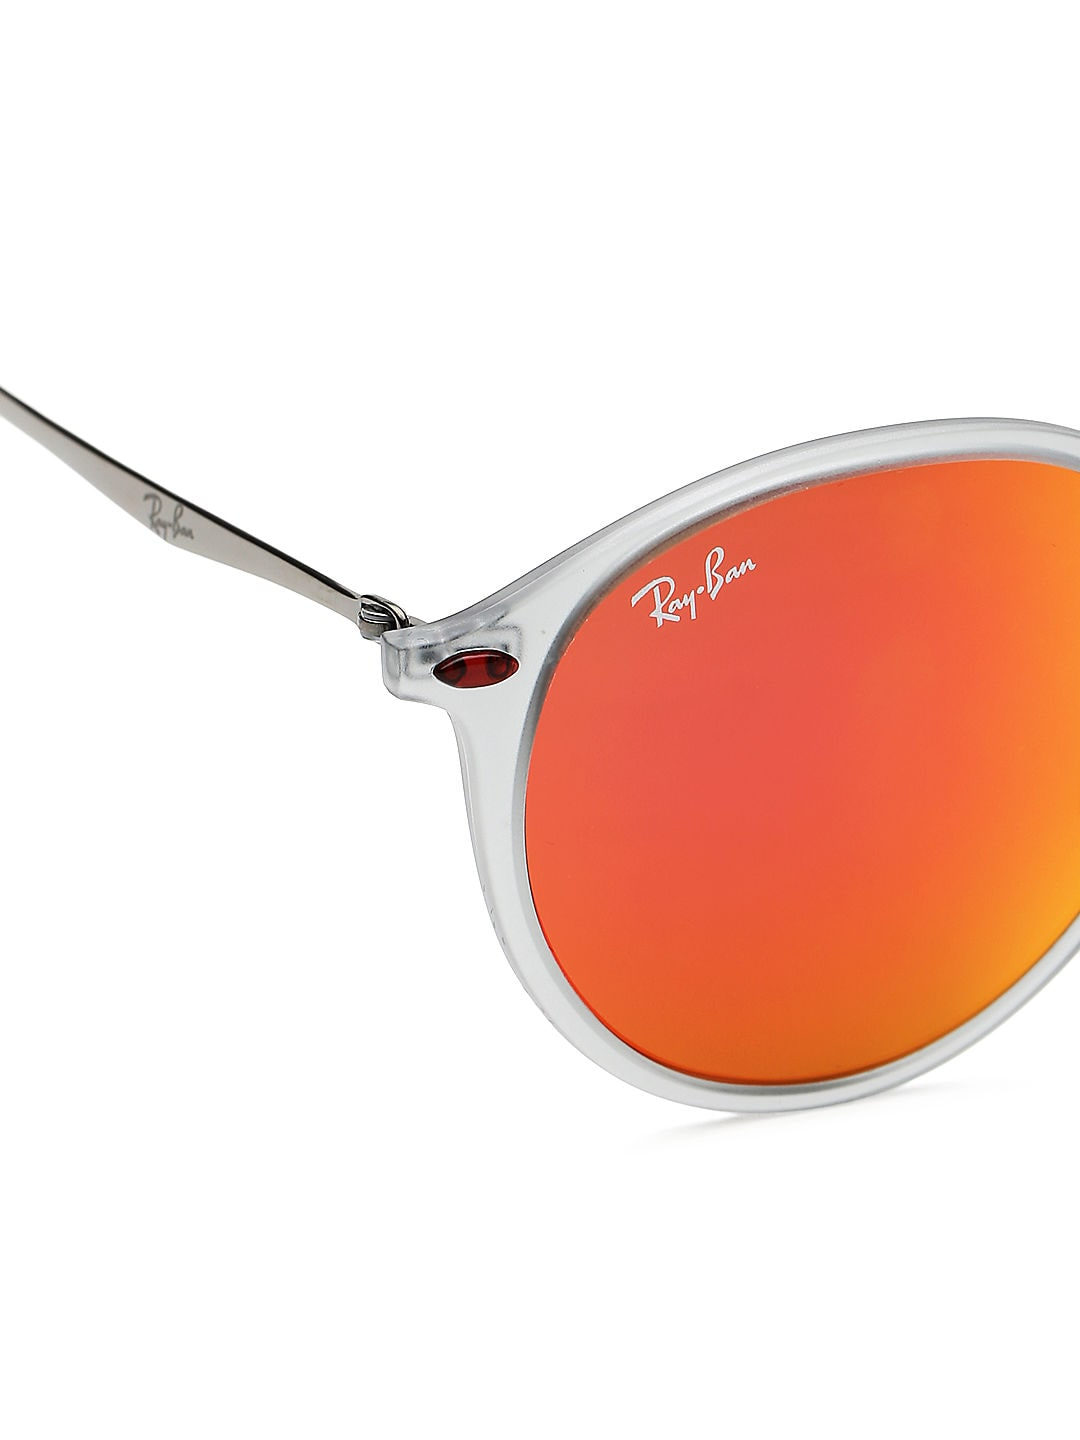 rayban glass  Ray-Ban Store - Buy Ray Ban Sunglasses \u0026 Frames Online - Myntra